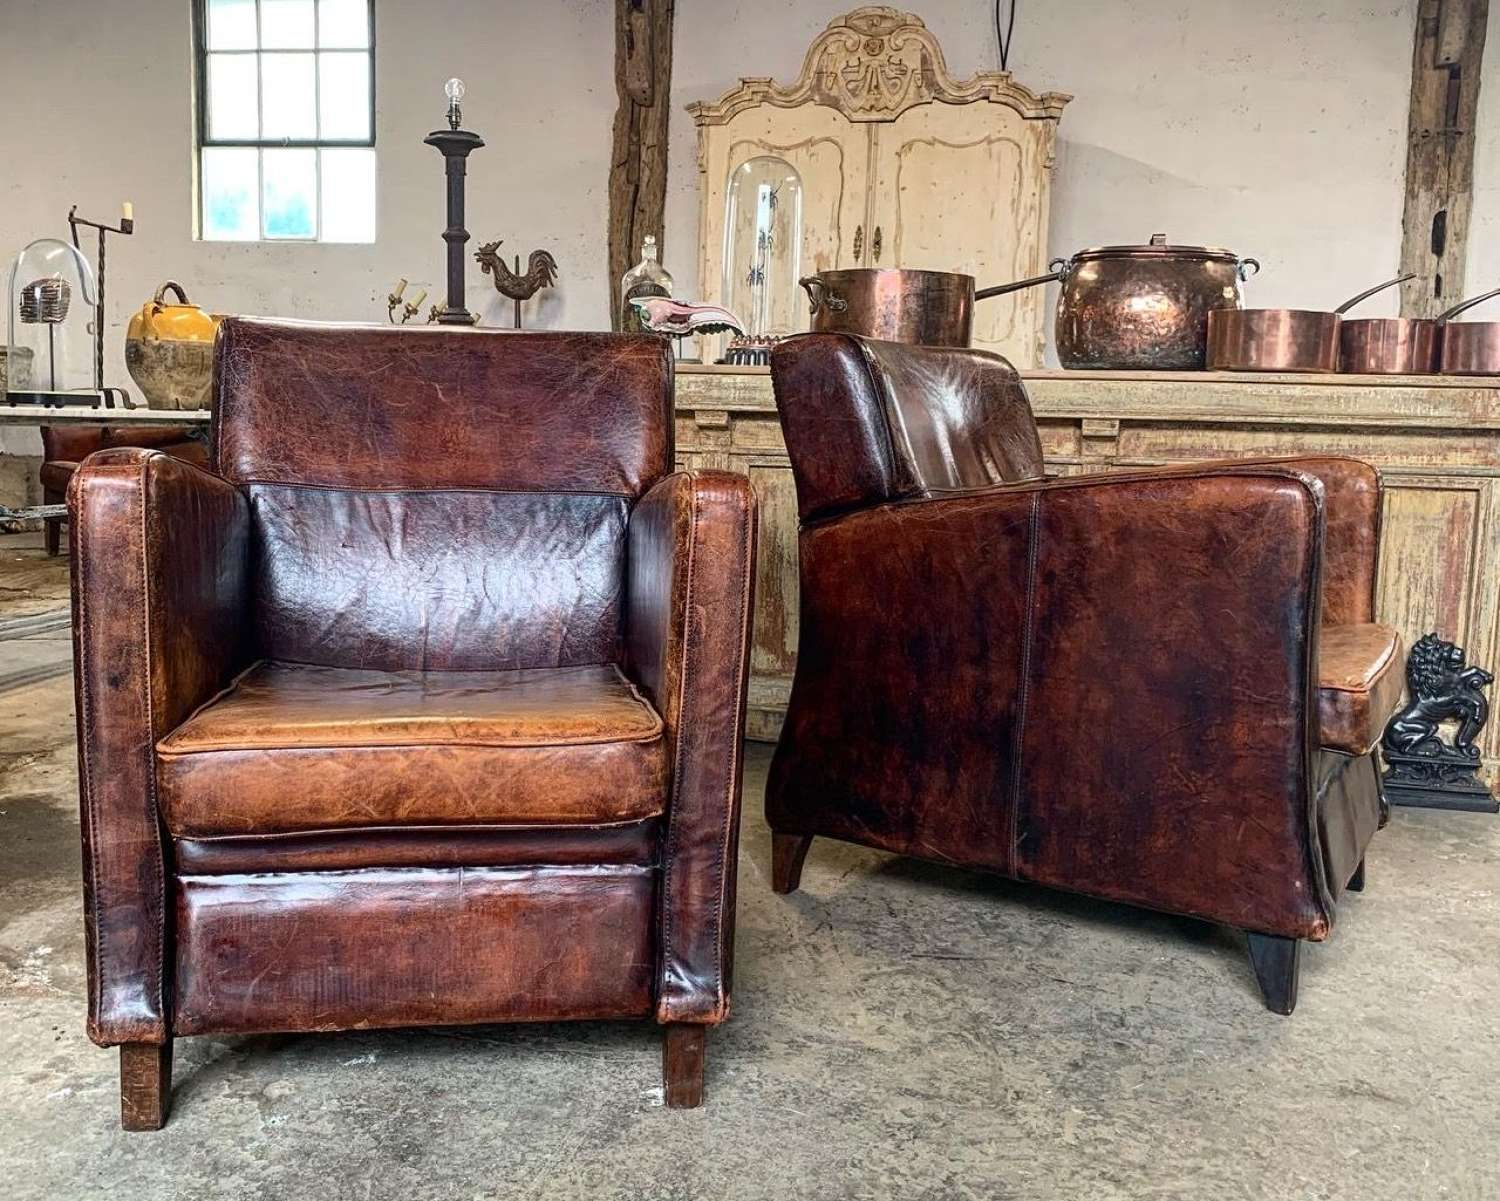 ART DECO STYLE LEATHER ARMCHAIRS